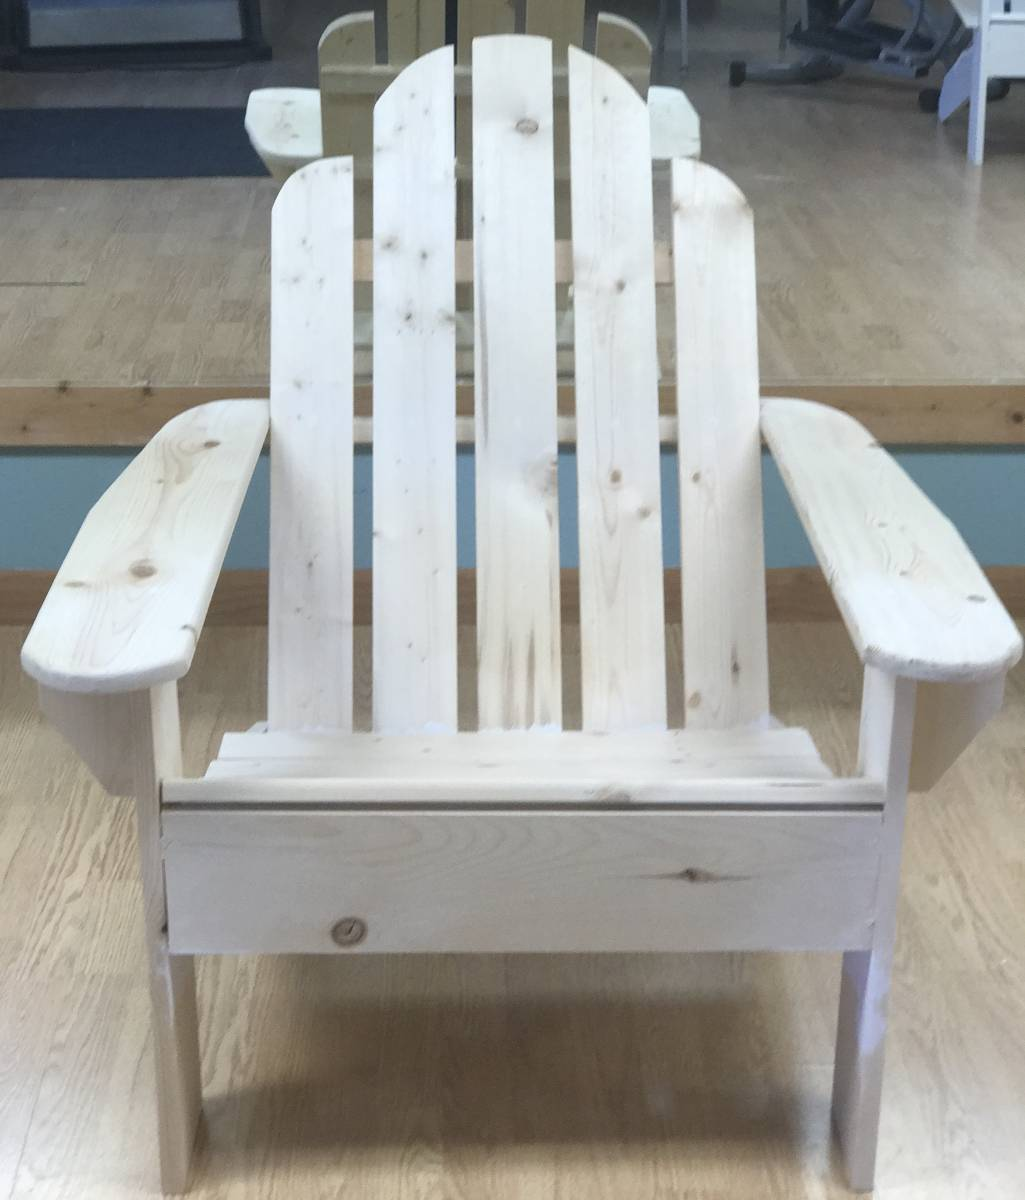 adirondack chairs kits butterfly chair replacement covers outdoor jfb 301 assembly required ventures